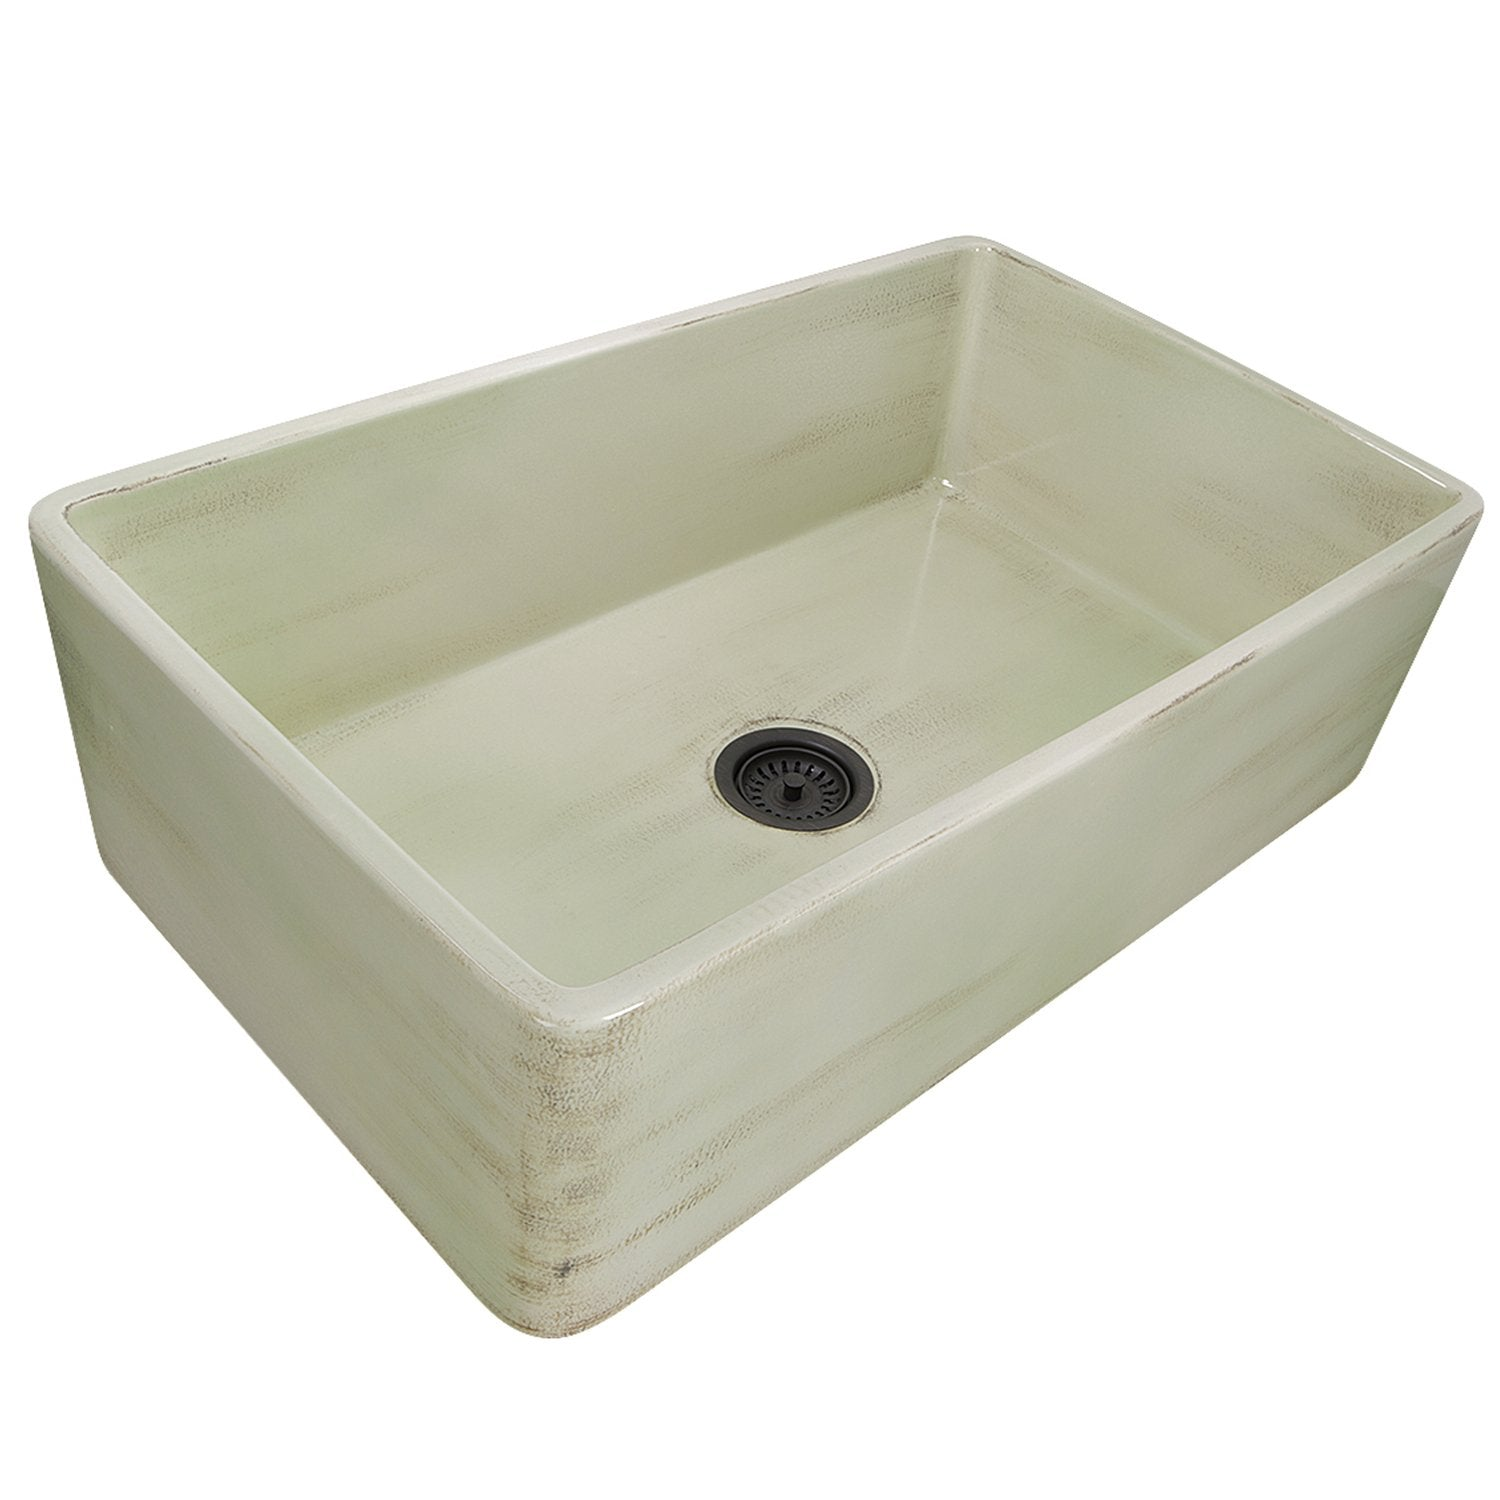 "Nantucket Sinks 33"" Farmhouse Fireclay Sink with Shabby Green Finish"